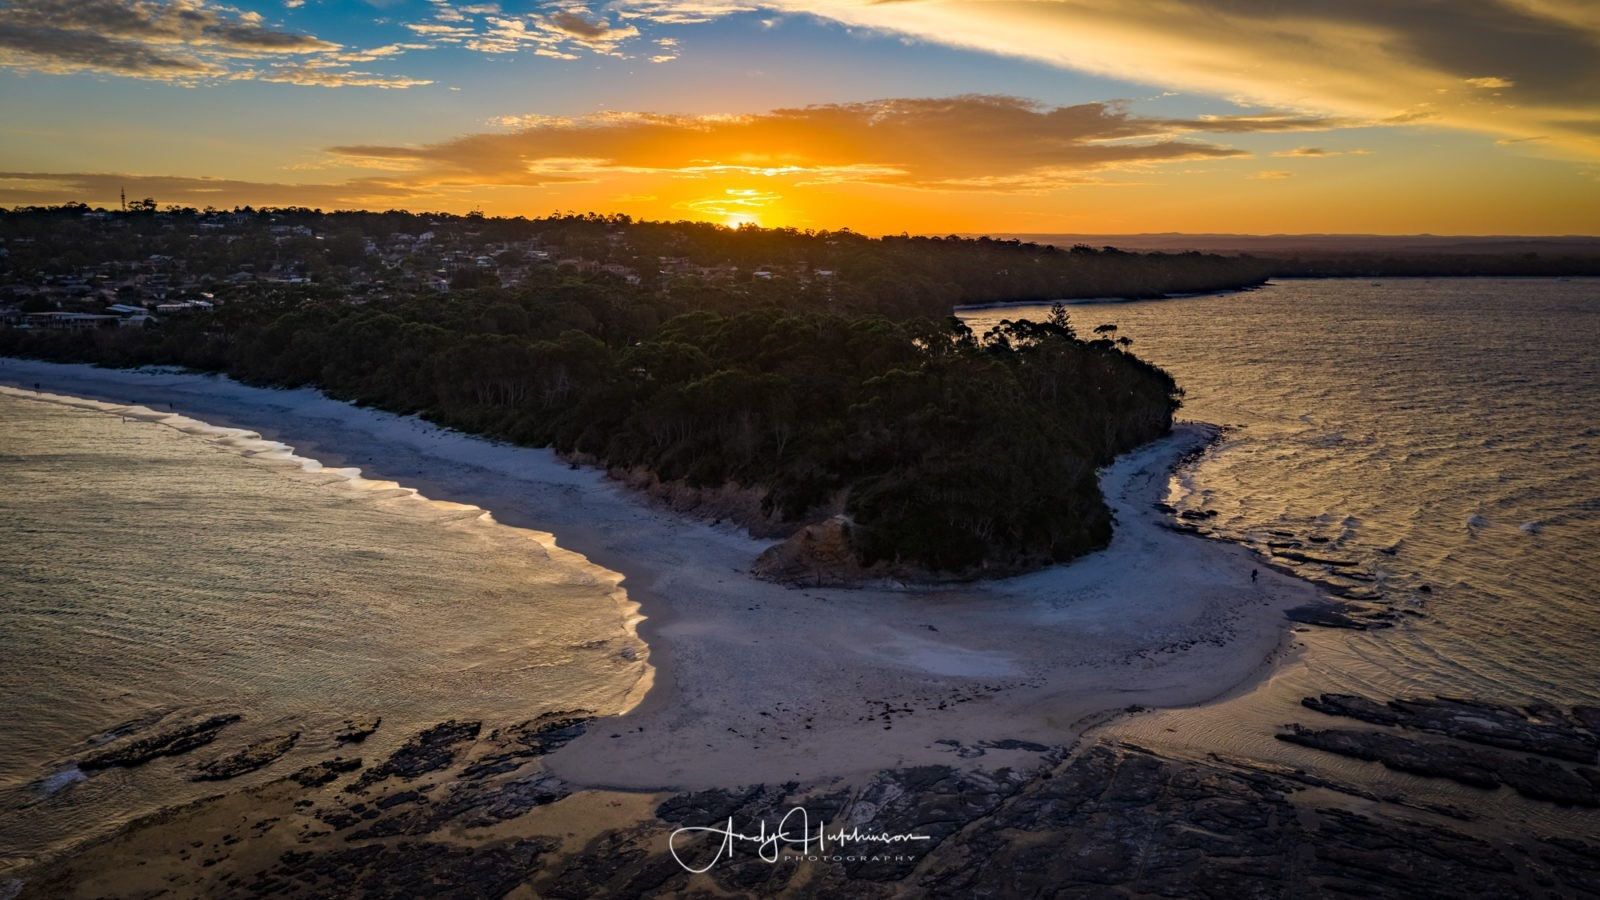 Seems to me that the tourist season in Jervis Bay is getting longer as the years go by. Five years ago I'd have had this place entirely to myself on a weekday at the end of February, but there were plenty of people about.